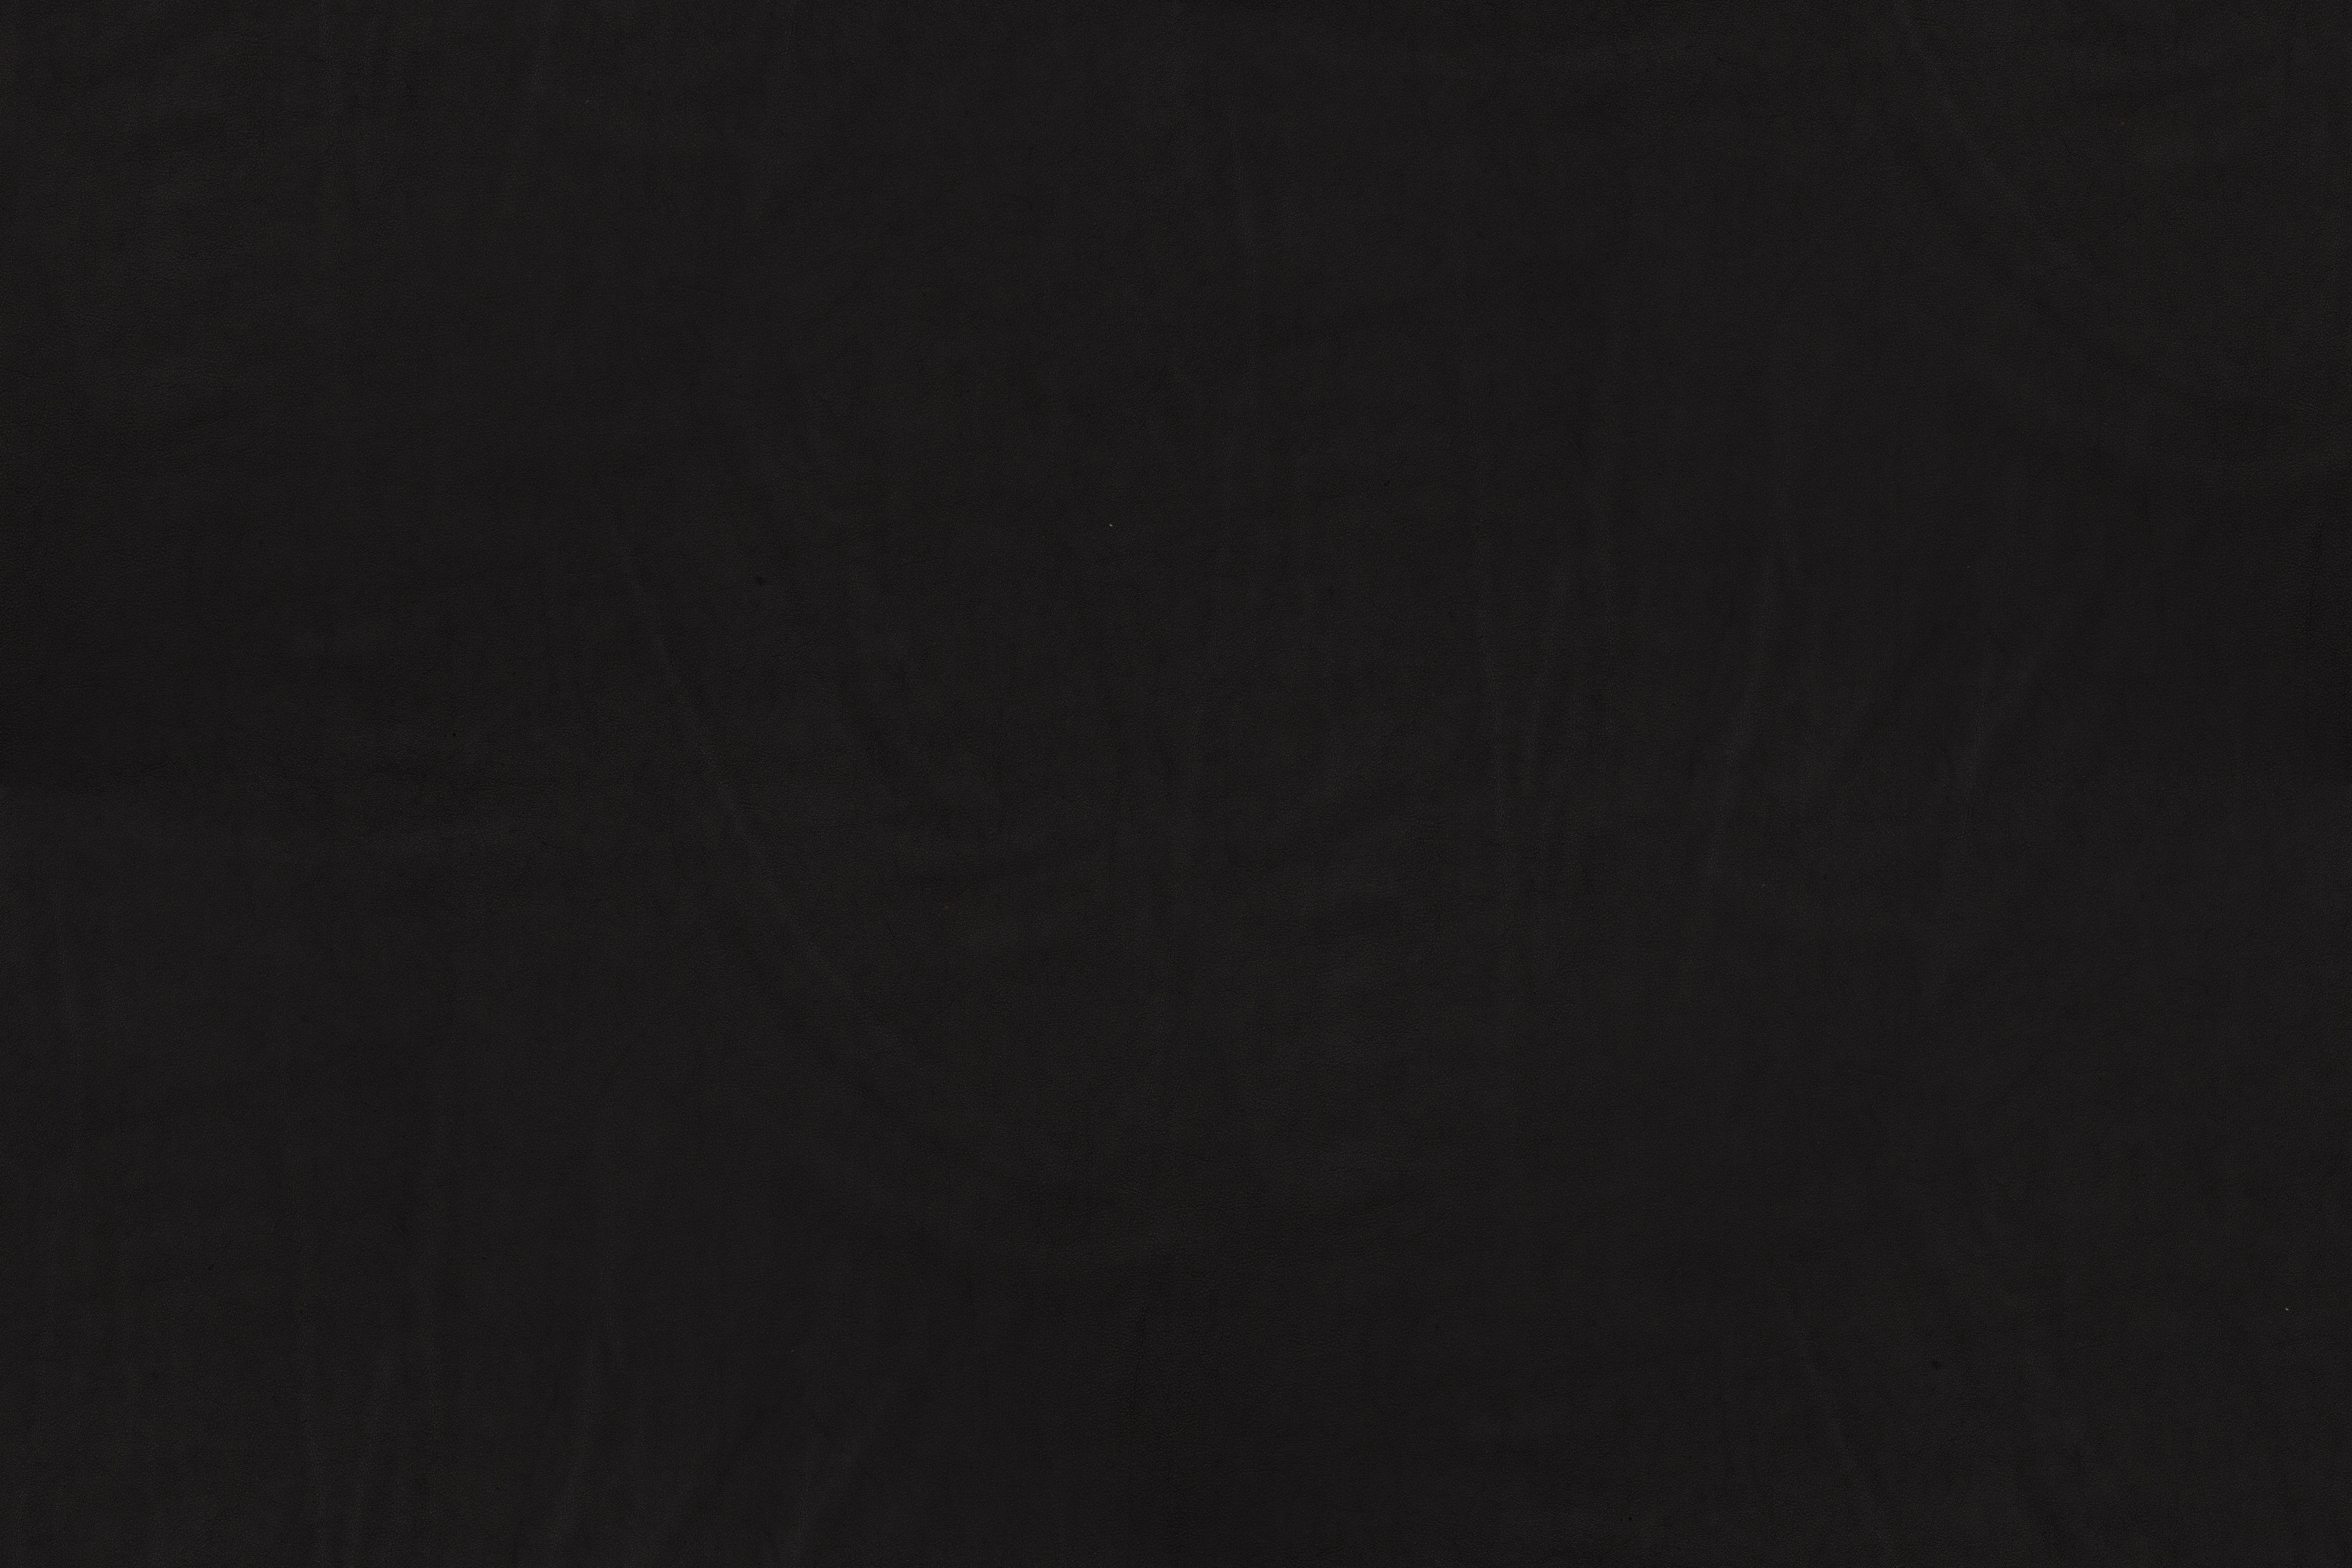 seamless black wall texture. Delighful Texture Free High Resolution Black Textures  Wild Textures For Seamless Wall Texture L